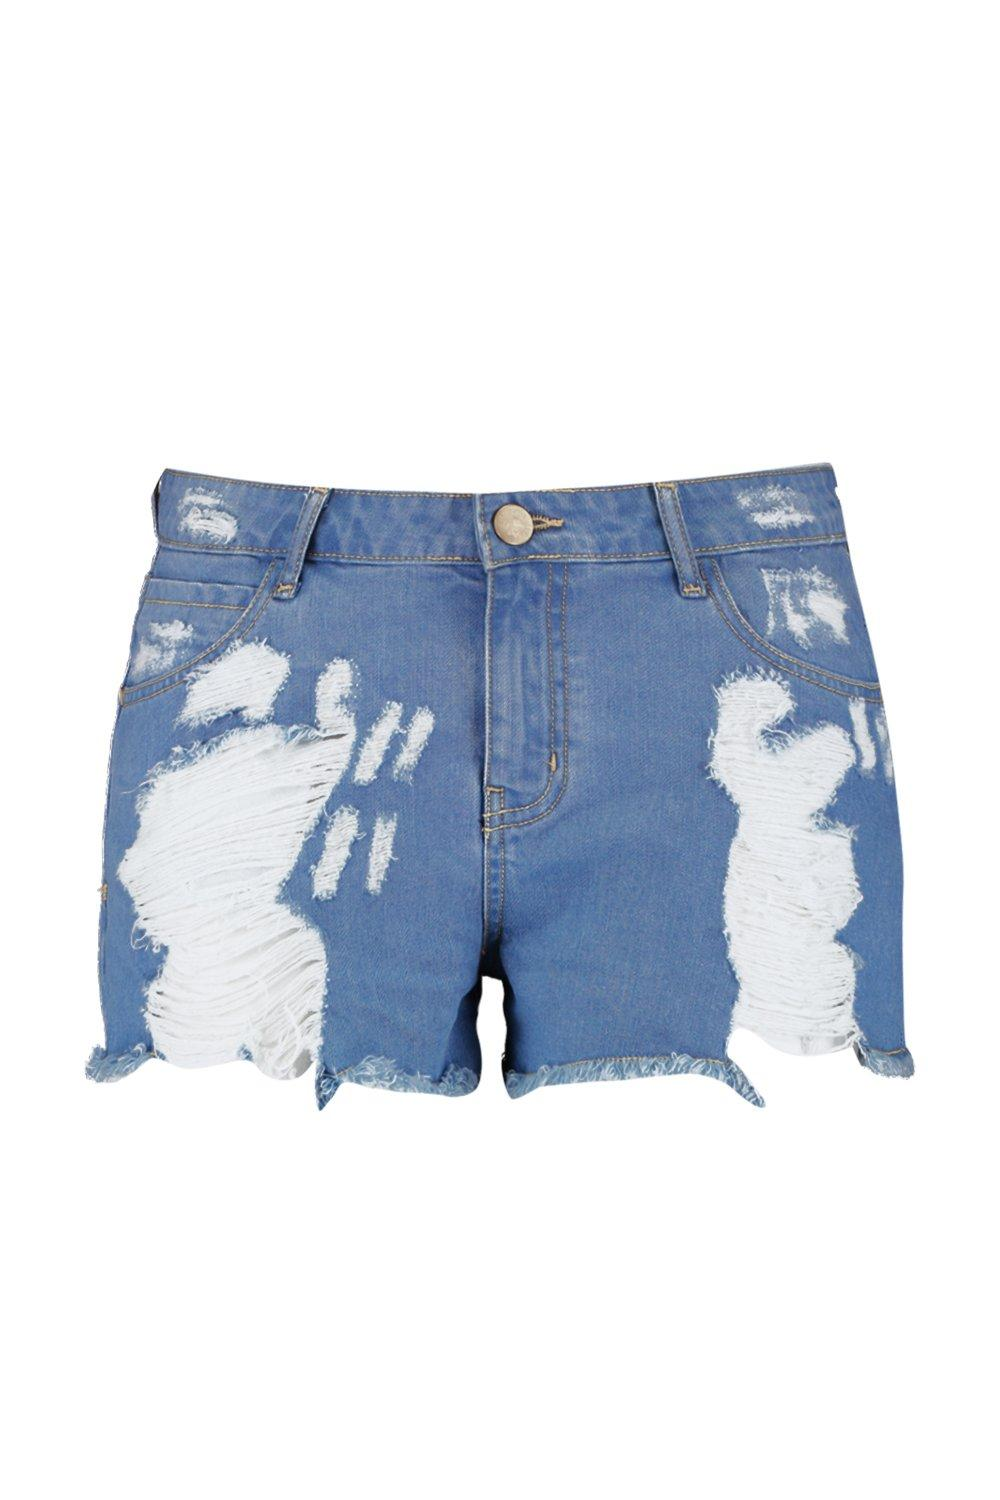 Plus Denim Distressed Short Mid blue Wash rqfHrwvBt